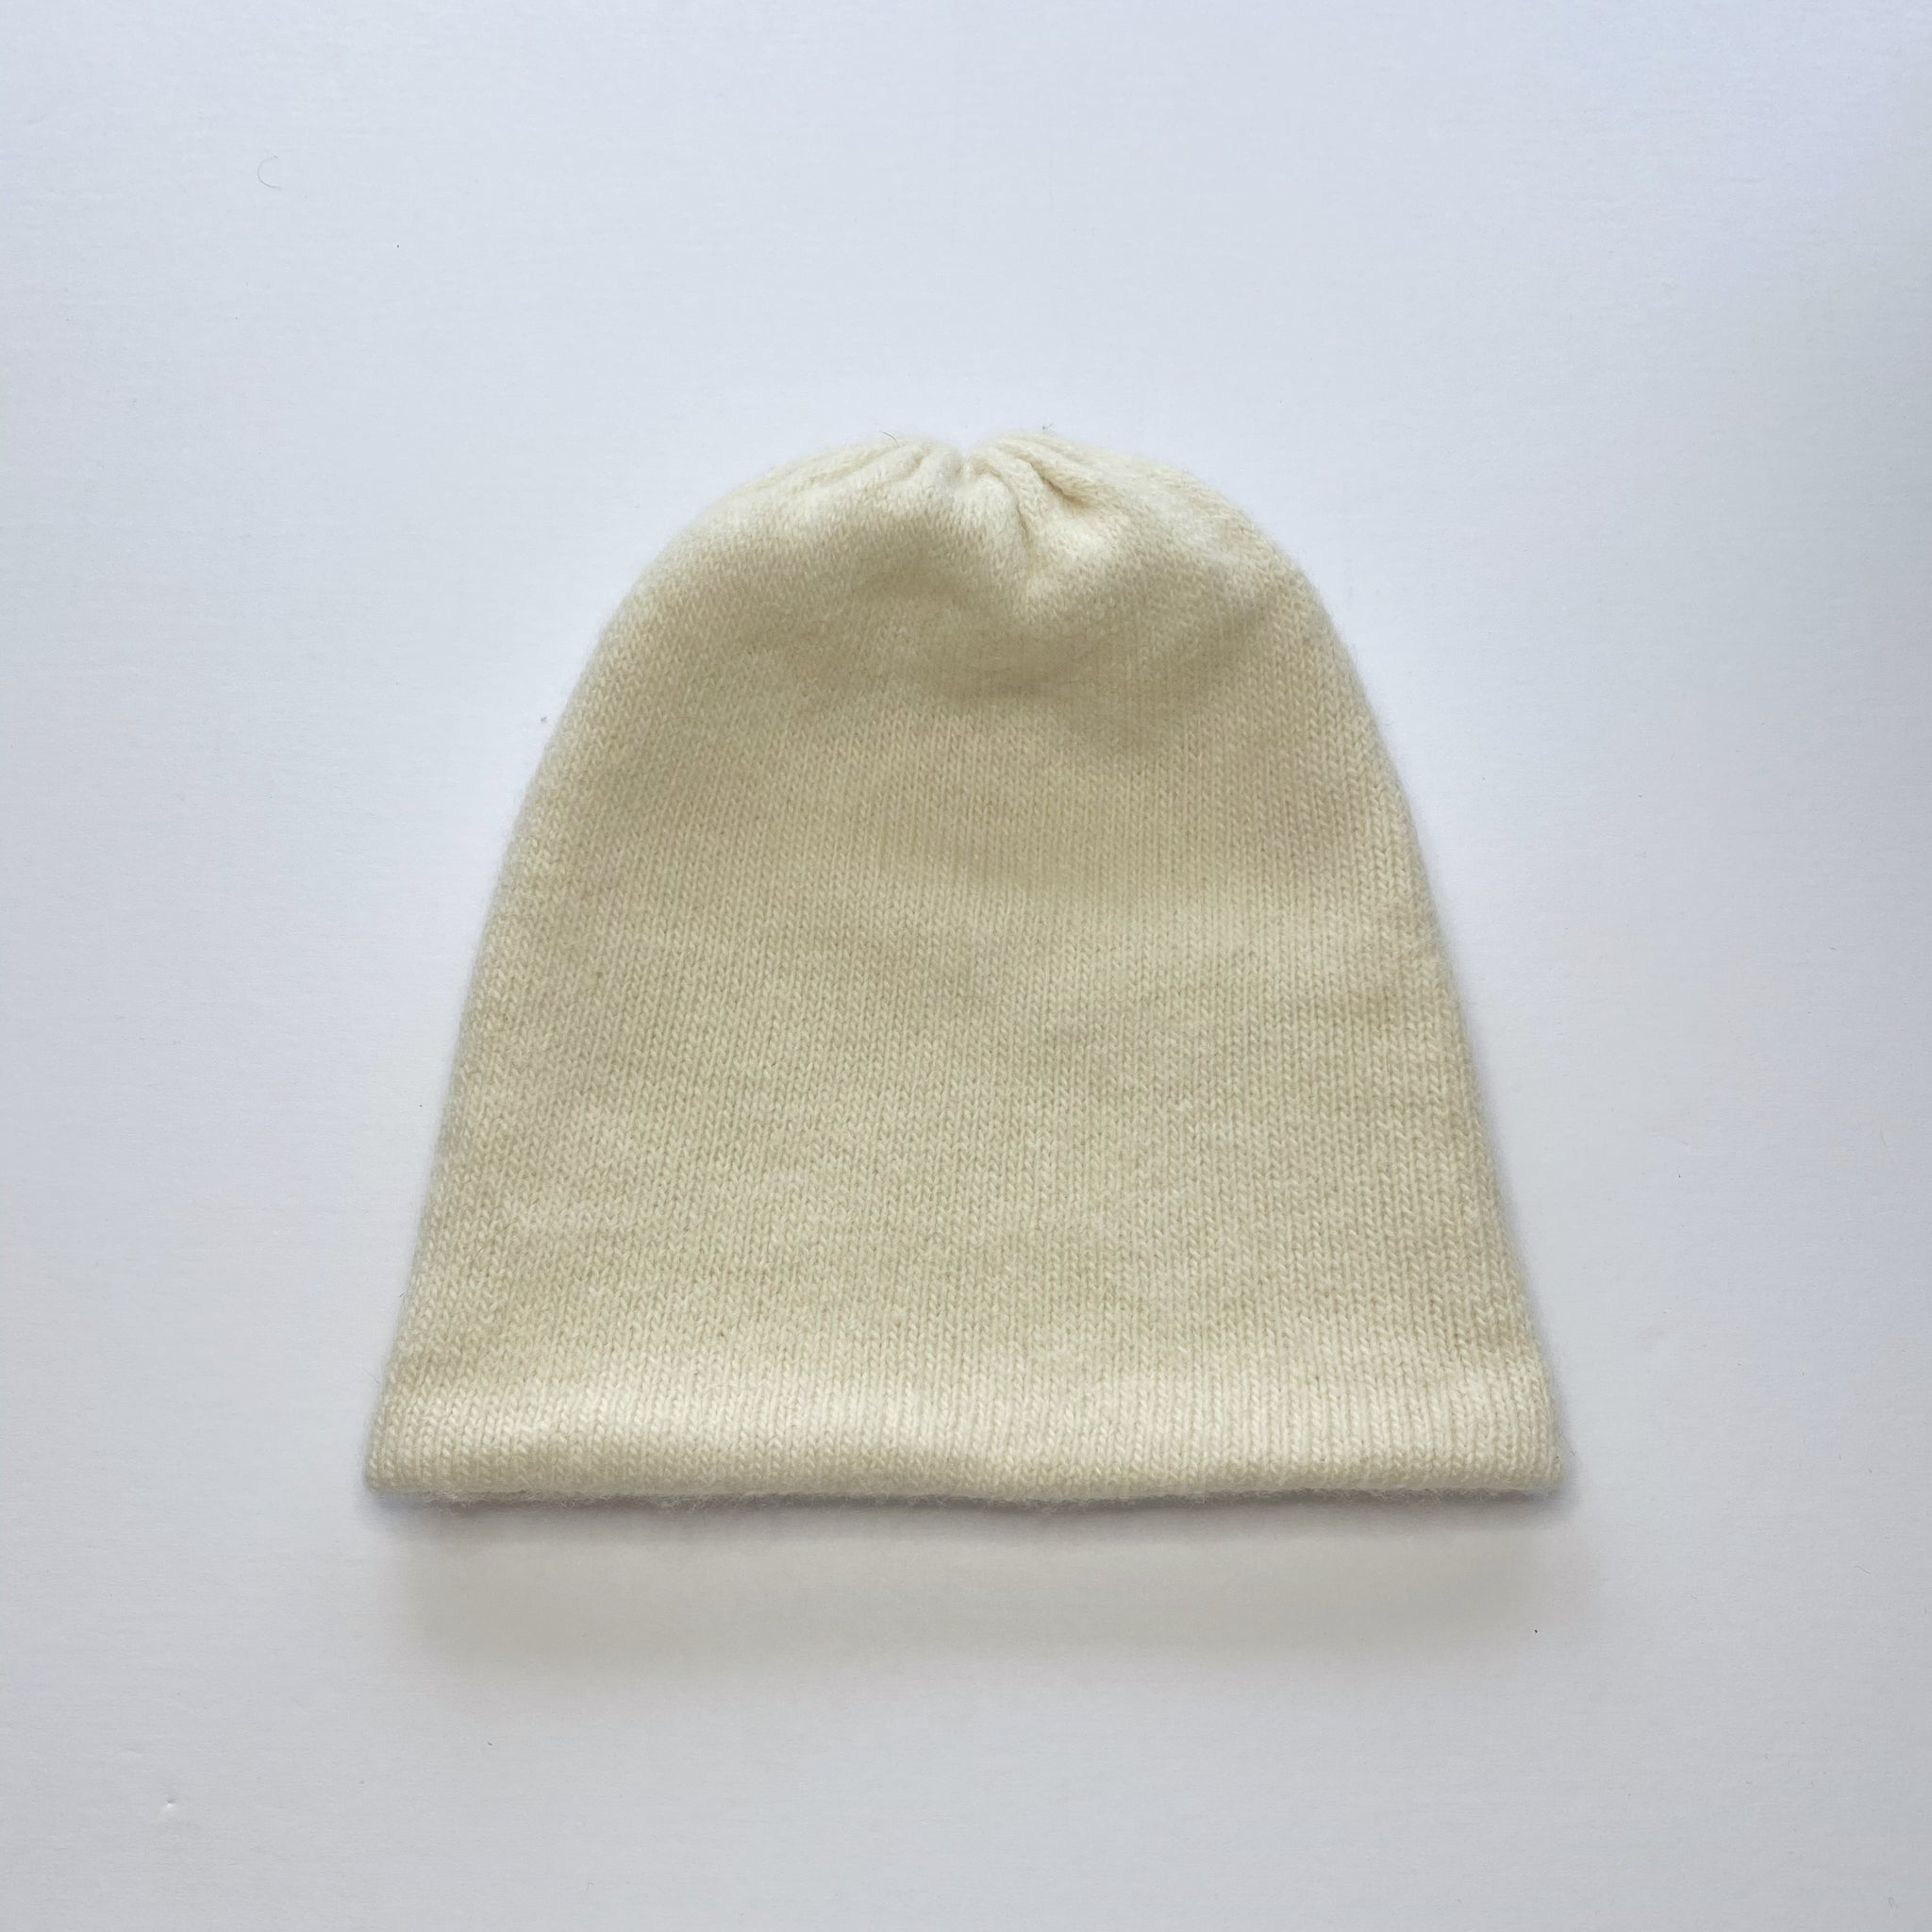 Knit Wool Beanie - Cream